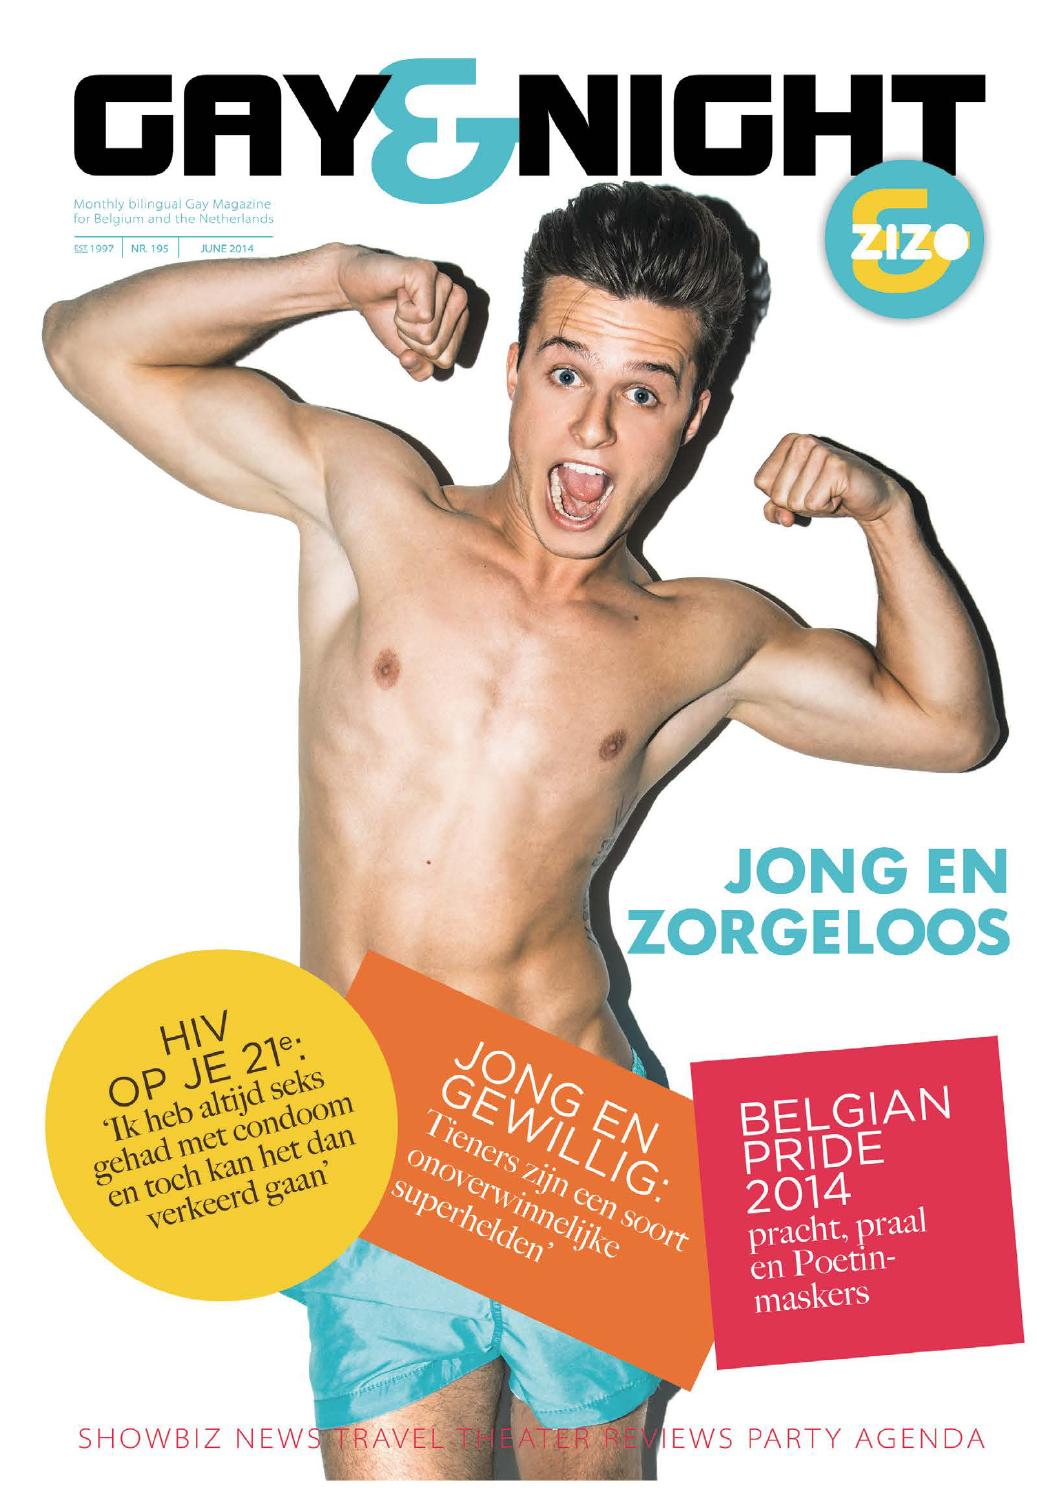 Gay&Night ZiZo Juni 2014 by Gay&Night Magazine issuu